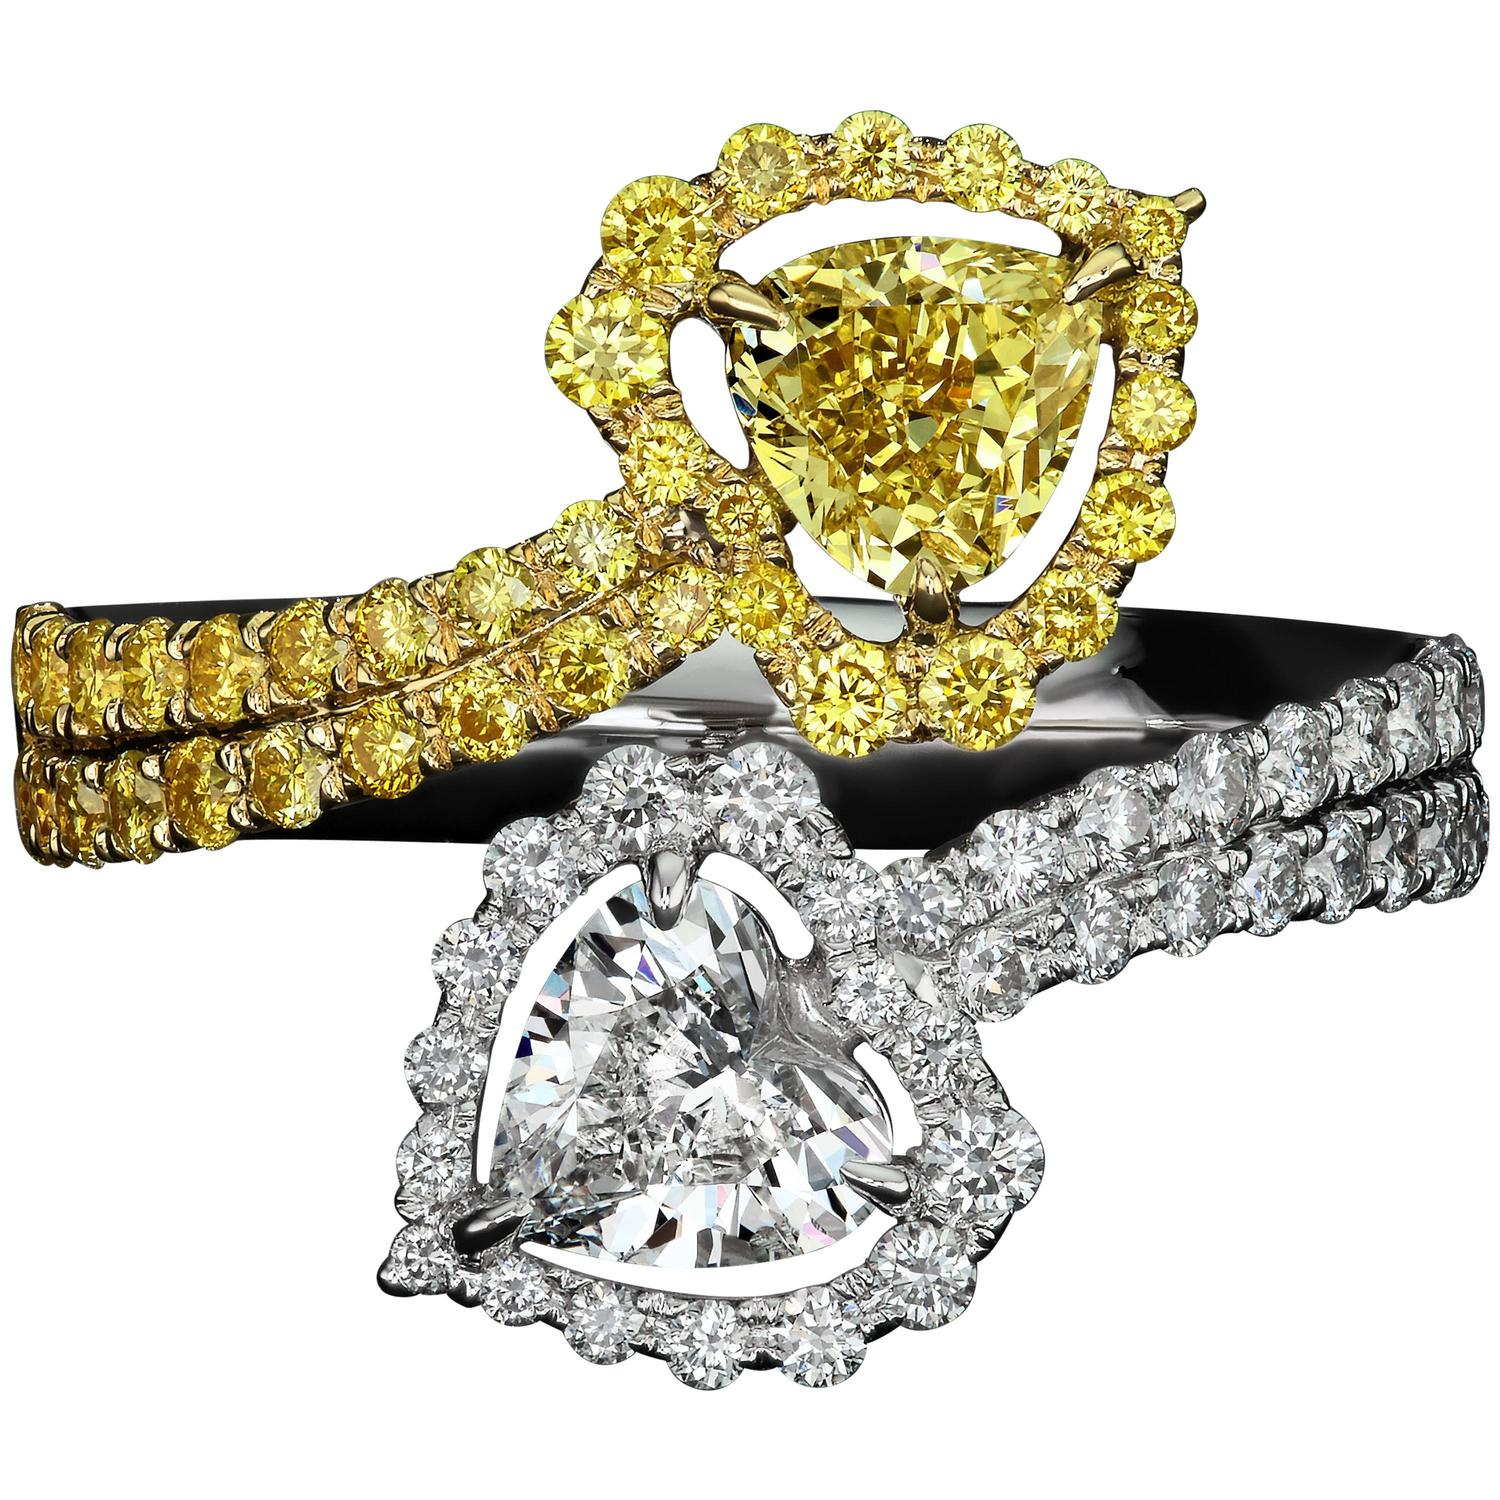 1 21 Carat Flawless Heart Shaped Diamond Two Color Gold Ring For Sale at 1stdibs